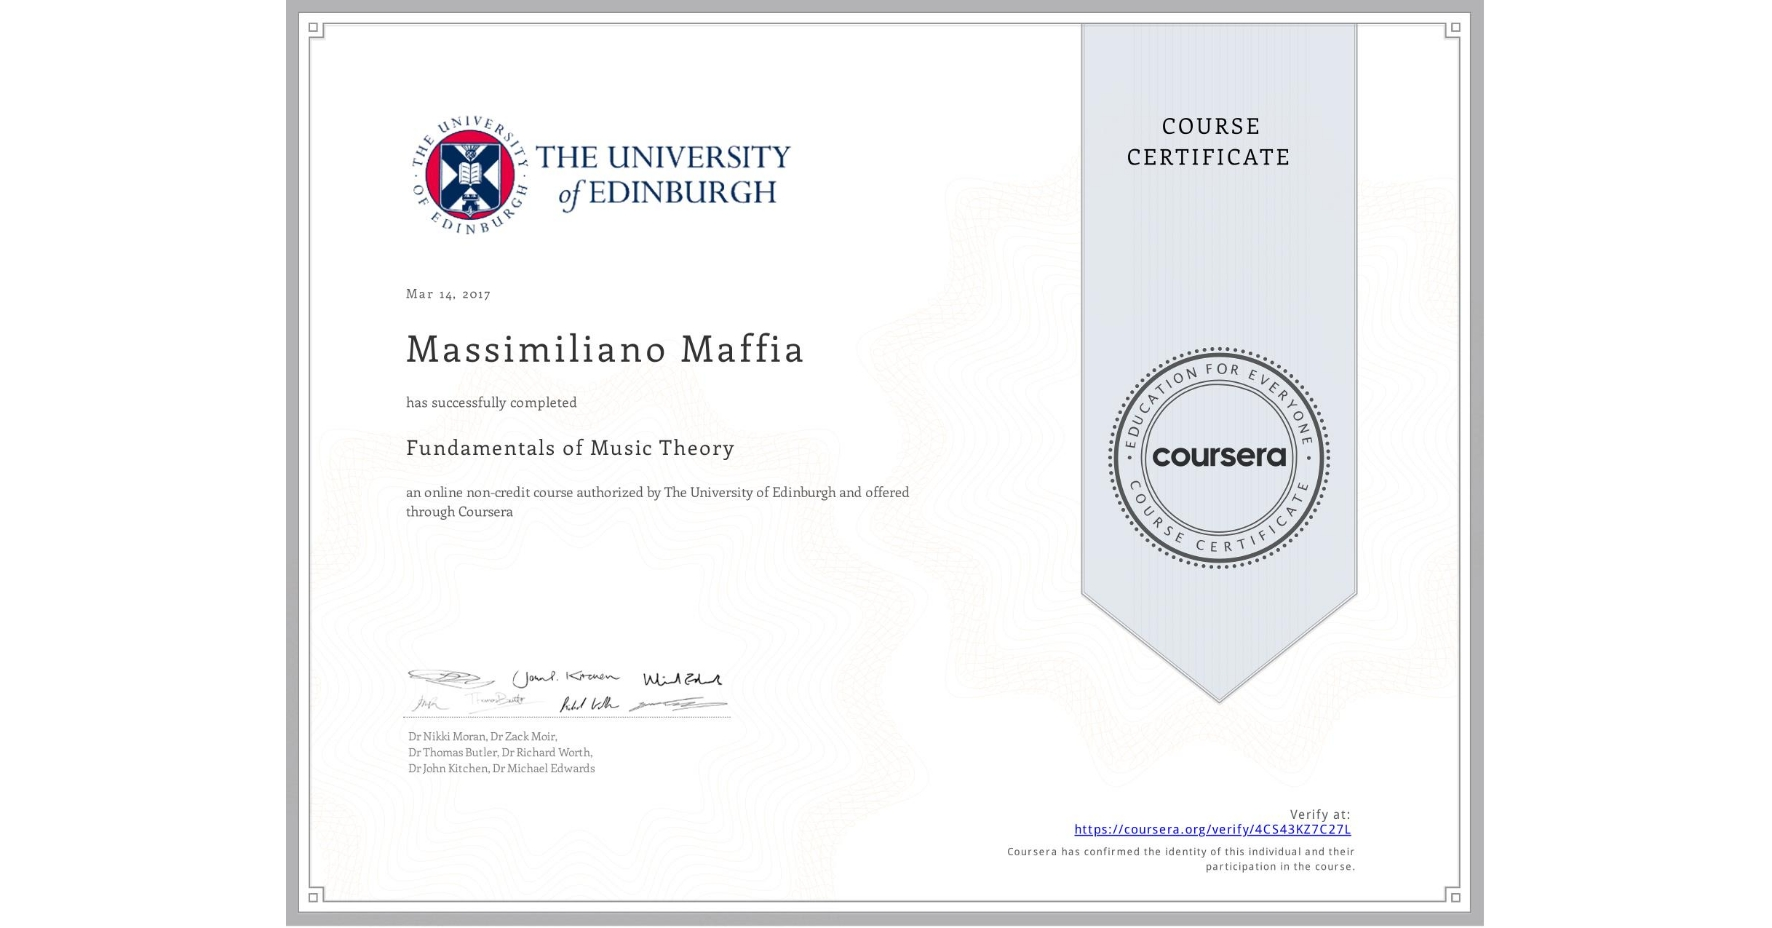 View certificate for Massimiliano Maffia, Fundamentals of Music Theory, an online non-credit course authorized by The University of Edinburgh and offered through Coursera